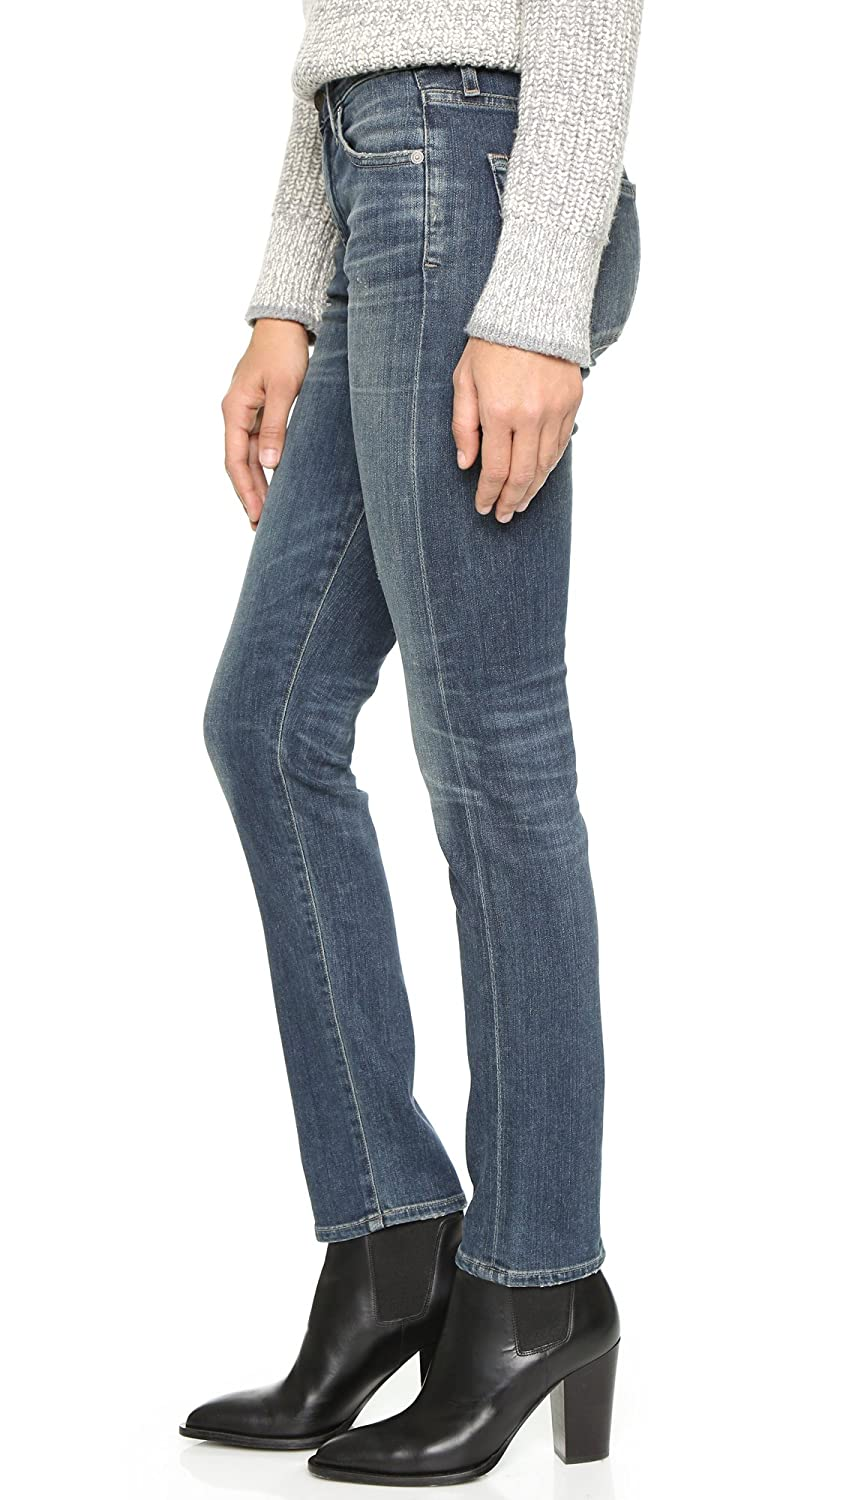 25 Citizens of Humanity Agnes Mid-Rise Slim Straight Jeans Delta Dawn